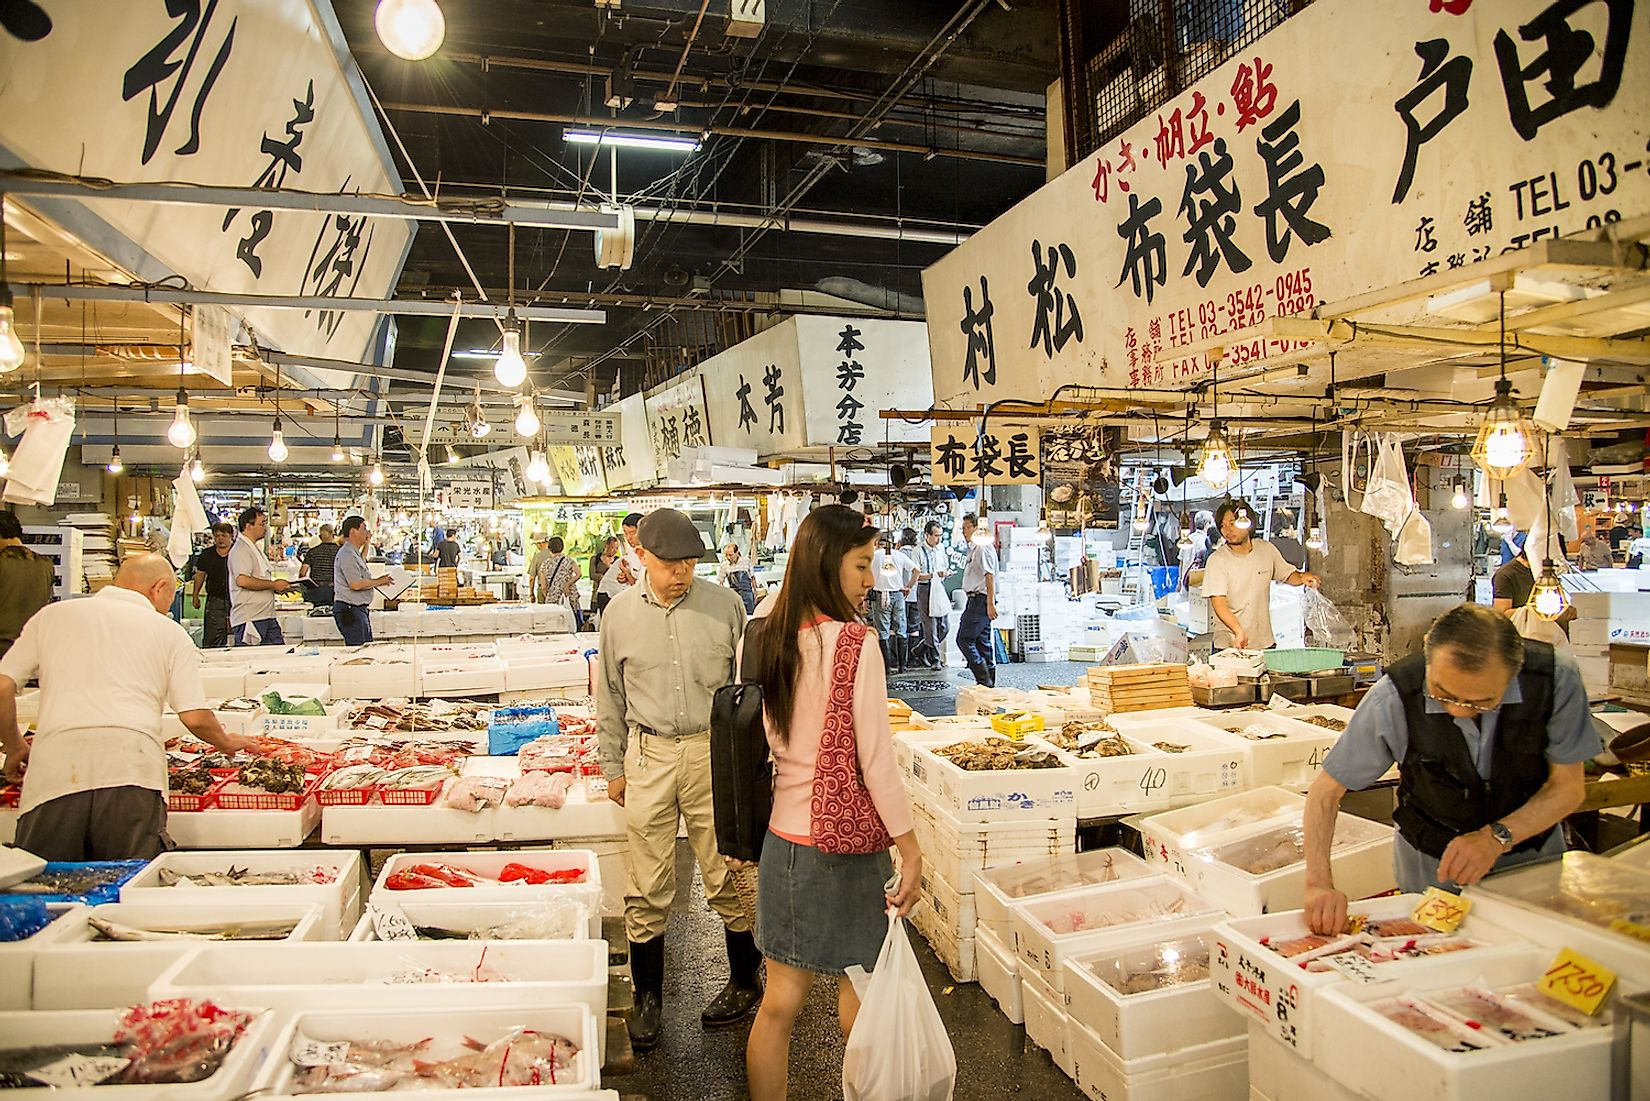 Merchants sell seafood in Tsukiji fish market in Tsukiji, Japan. Tsukiji fish market is one of biggest wet markets in the world. Image credit: Gjee/Shutterstock.com